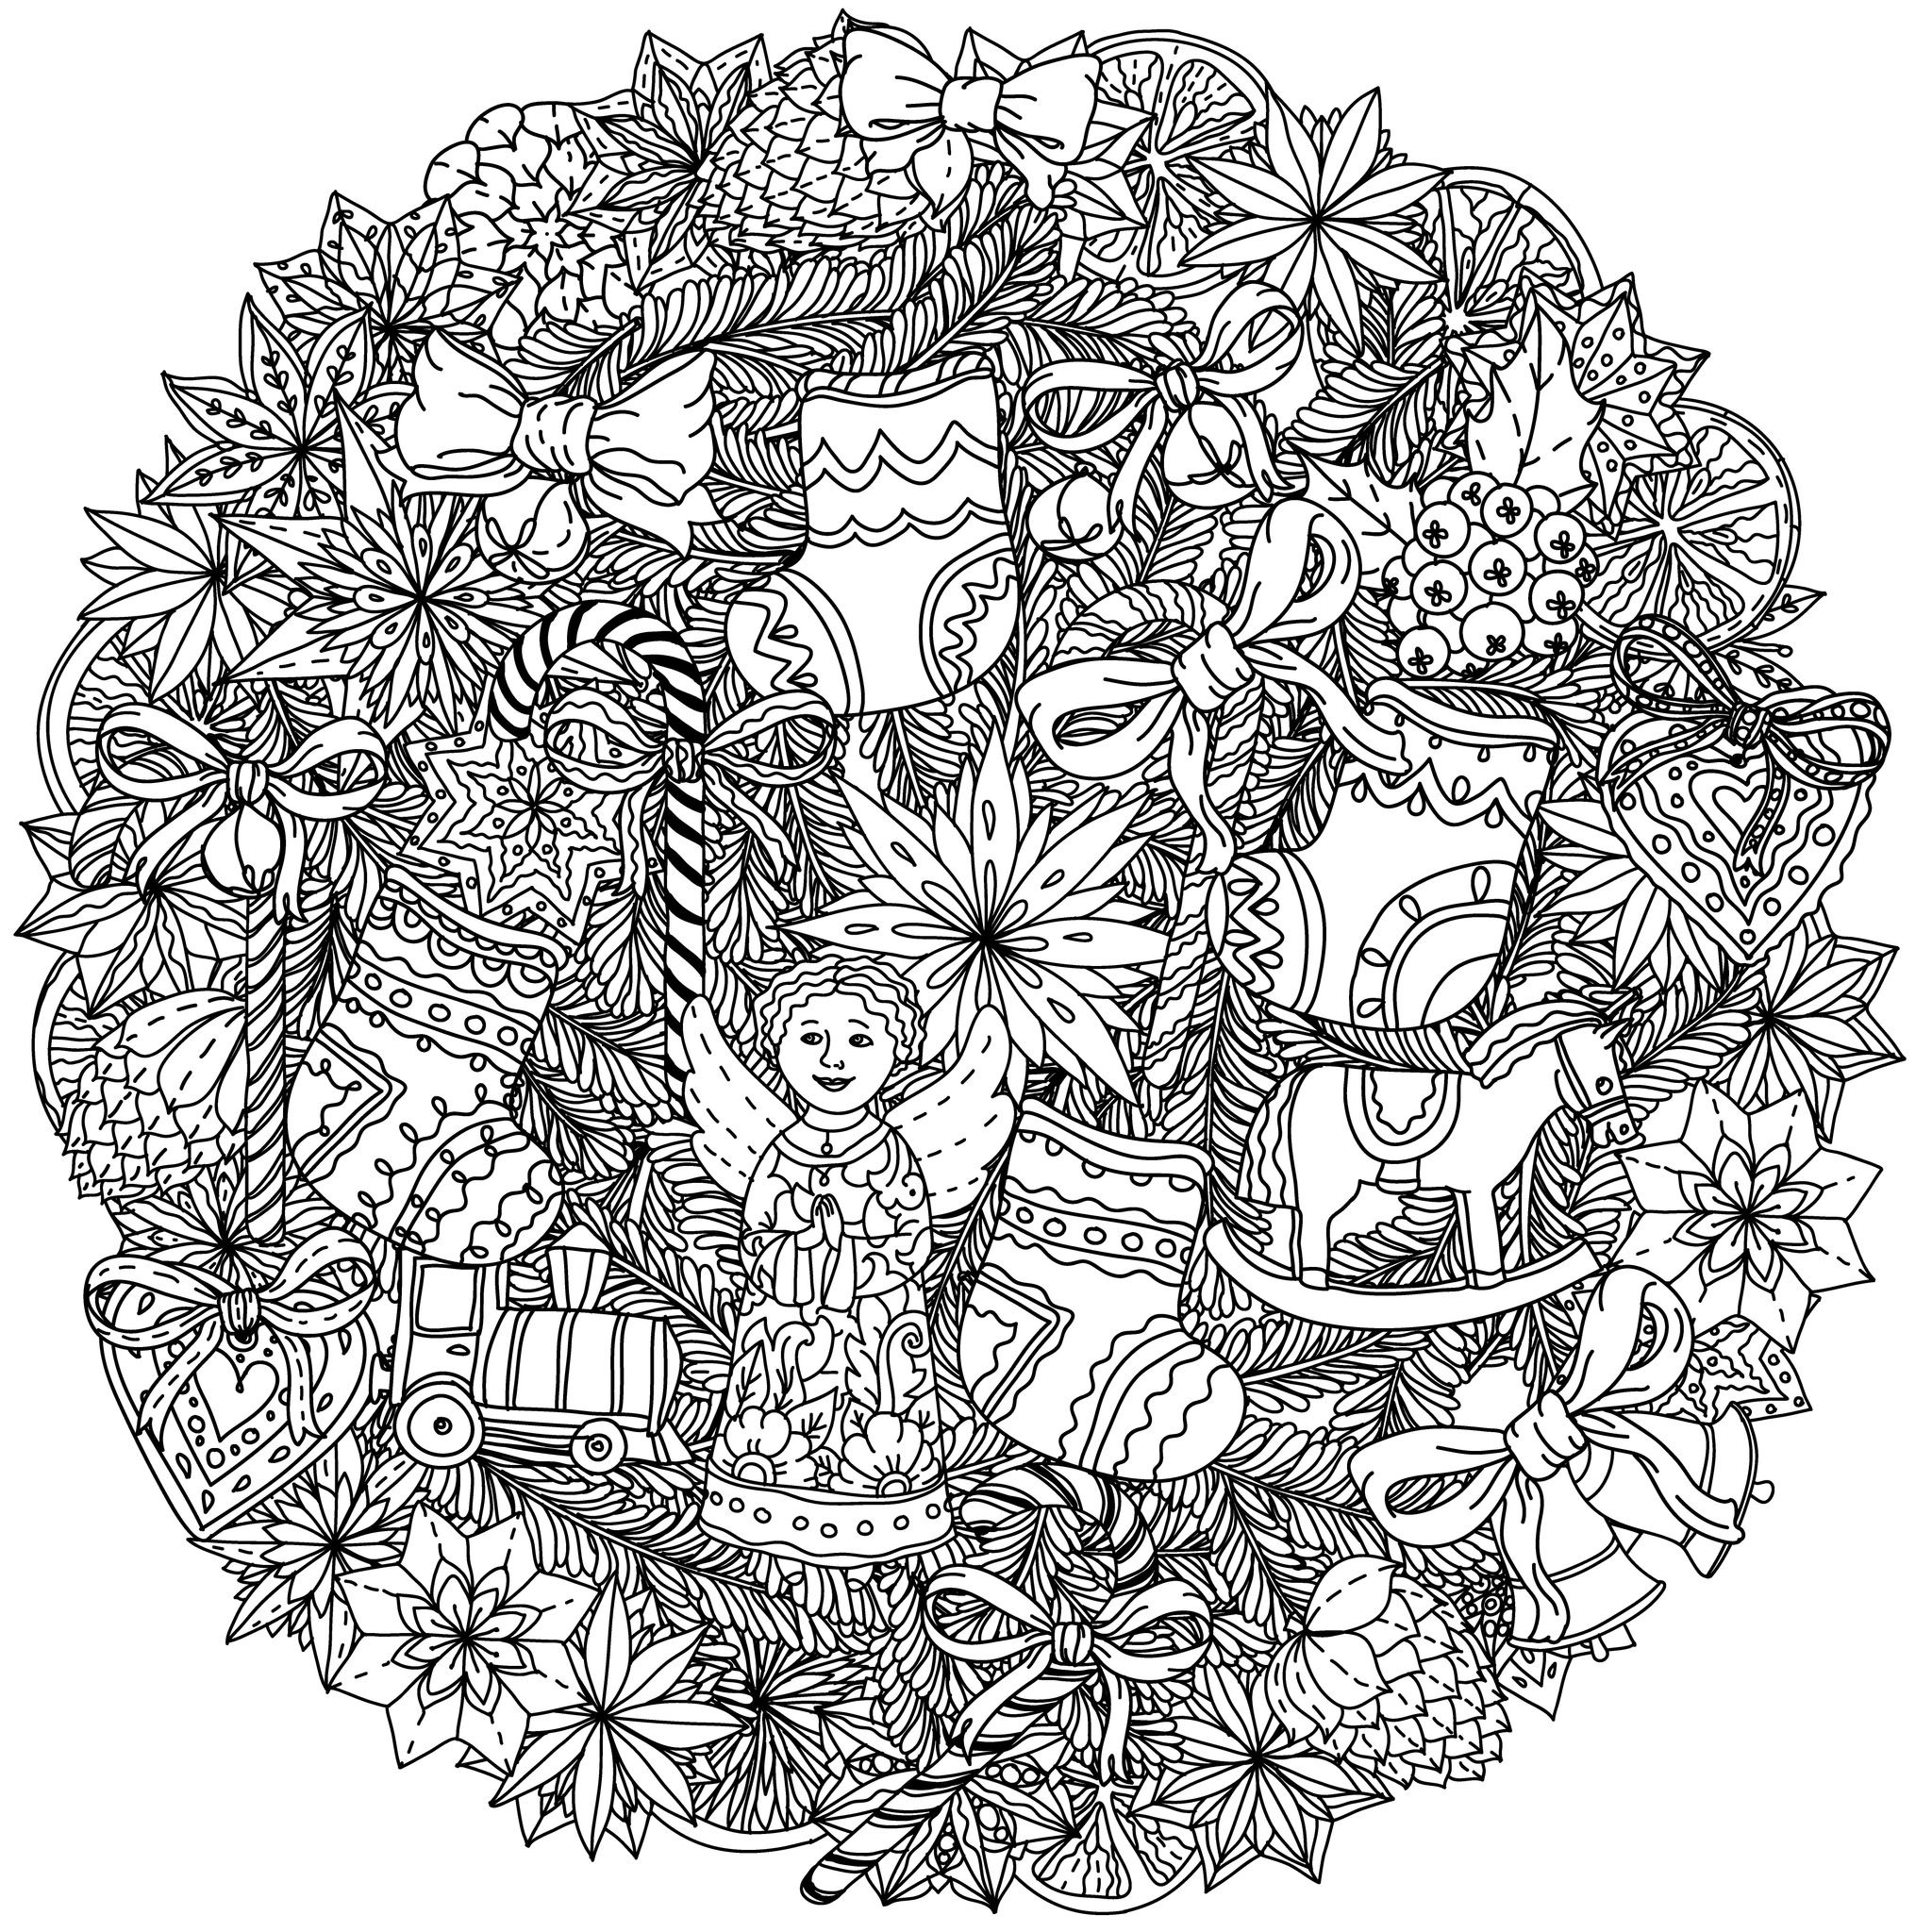 49525227 christmas wreath with decorative items black and white the best for your design - Mandalas noel ...